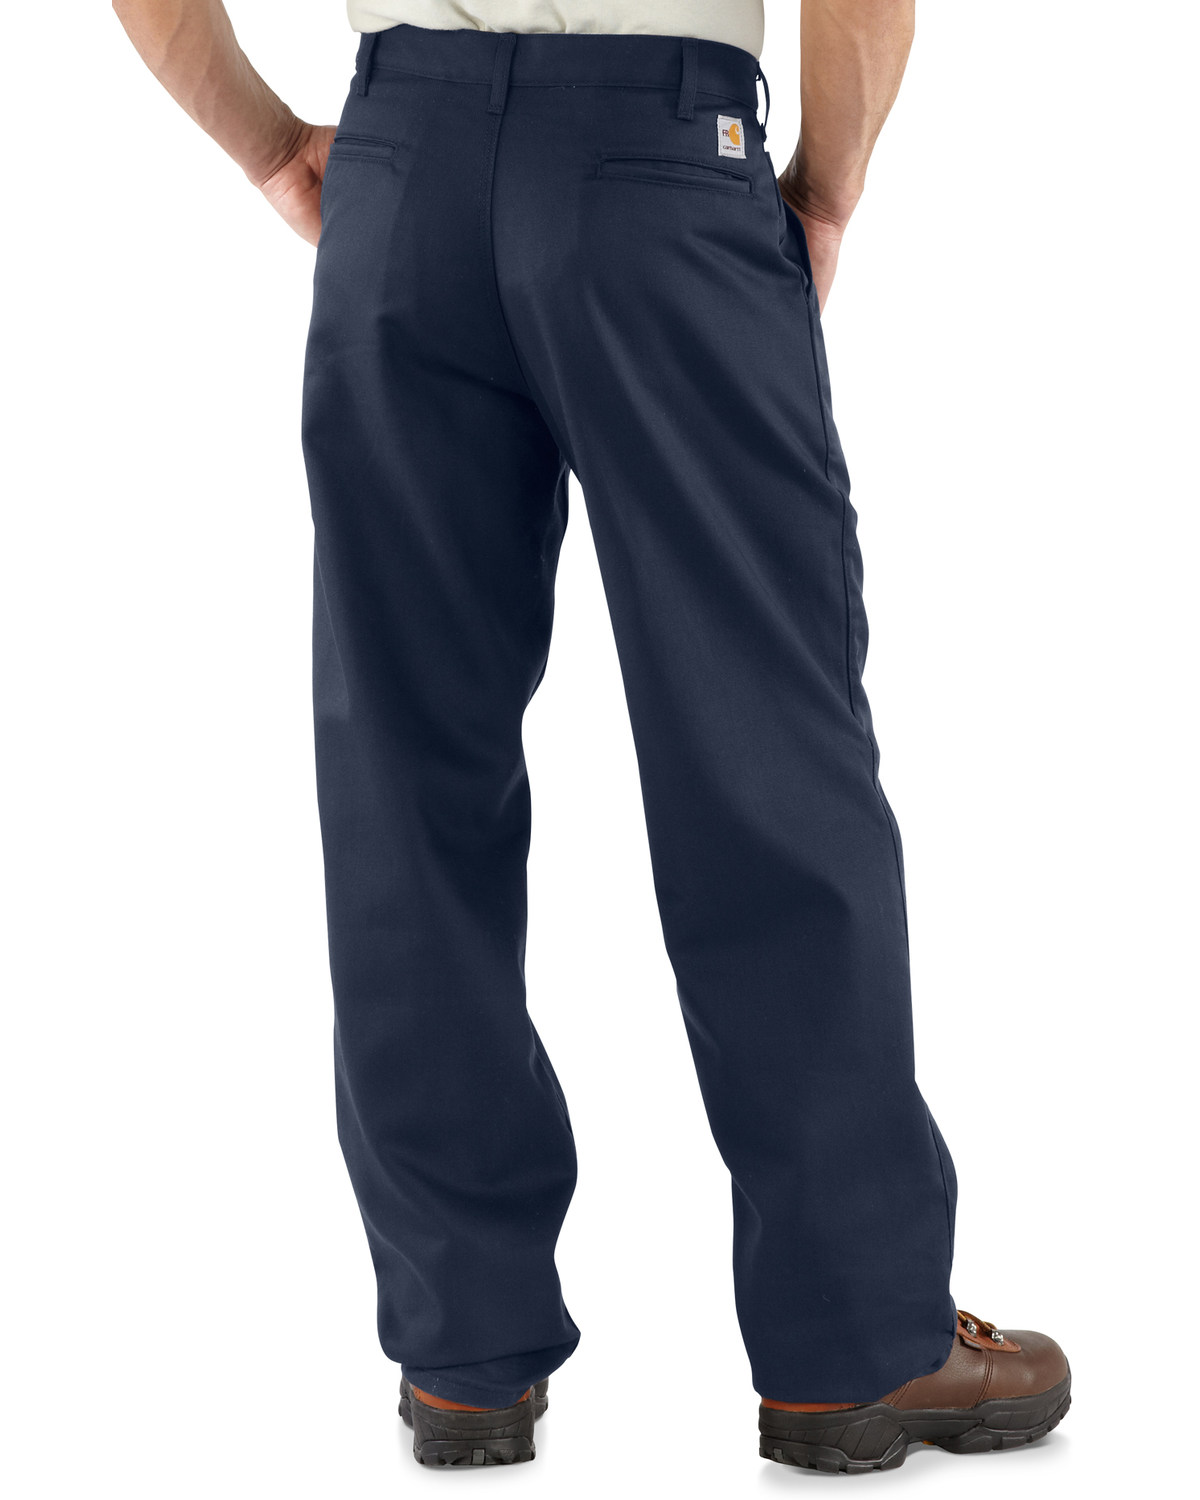 9cd362b88ba8 Carhartt Flame Resistant Twill Work Pants